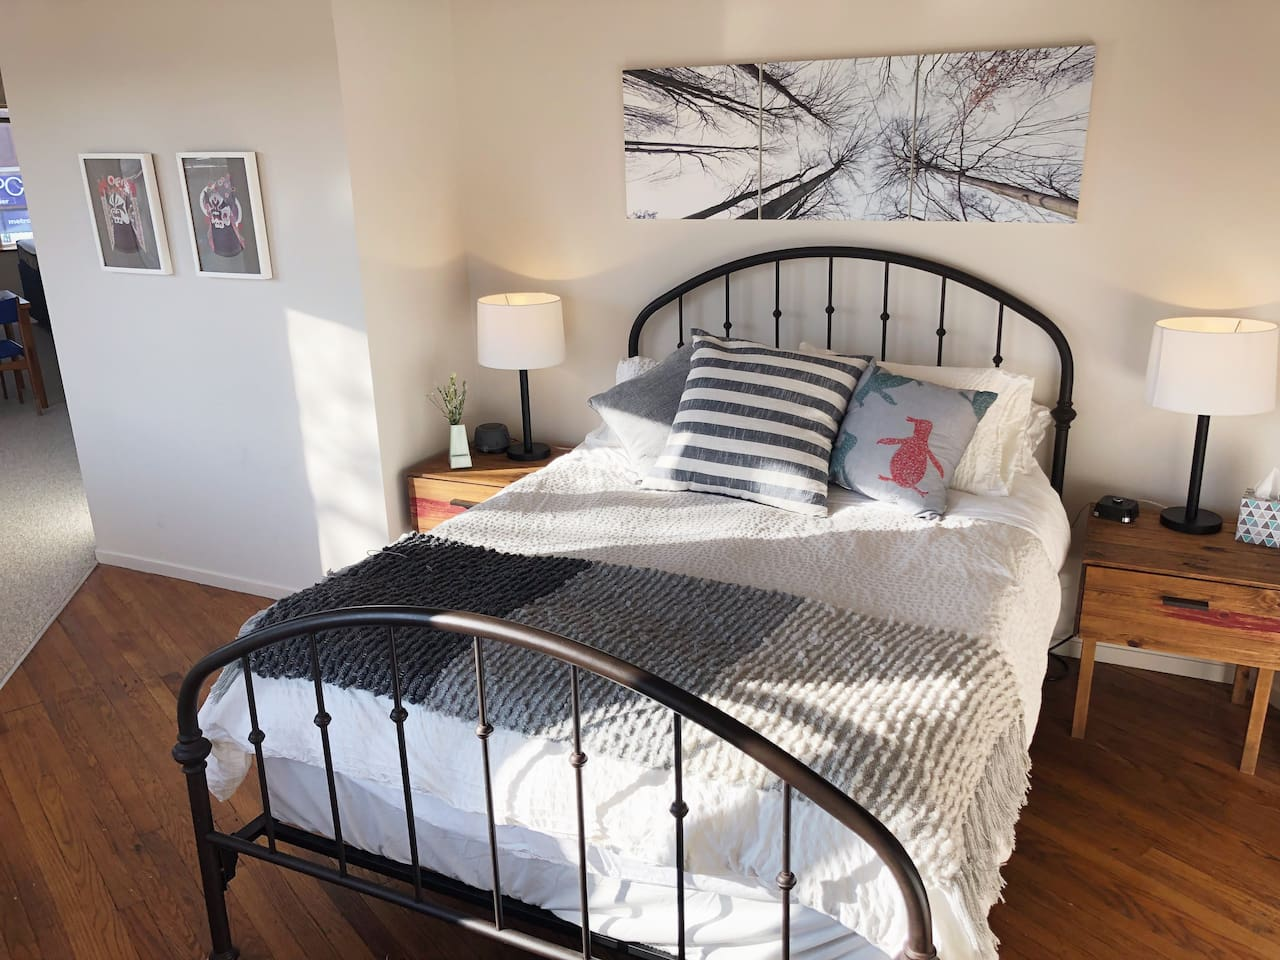 Loft style bedroom with lots of natural light and black-out shades. Queen sized memory foam mattress, lots of pillows.  Working ceiling fan in the bedroom above the bed.  Bedside lamps for relaxing/reading.